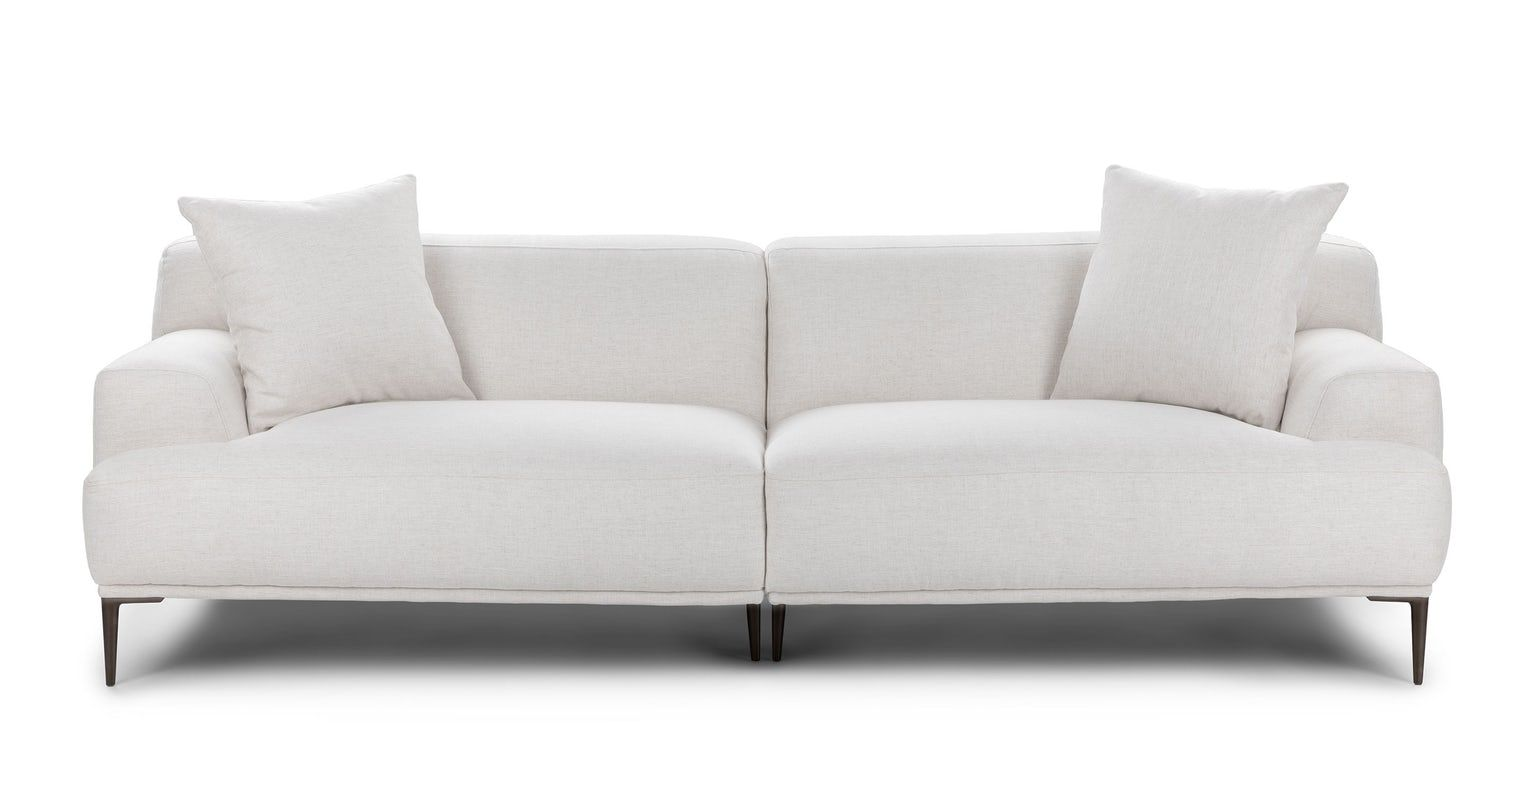 Abisko Quartz White Sofa In 2020 Contemporary Decor Living Room Modern Sofa Couch Mid Century Modern Sofa Couch